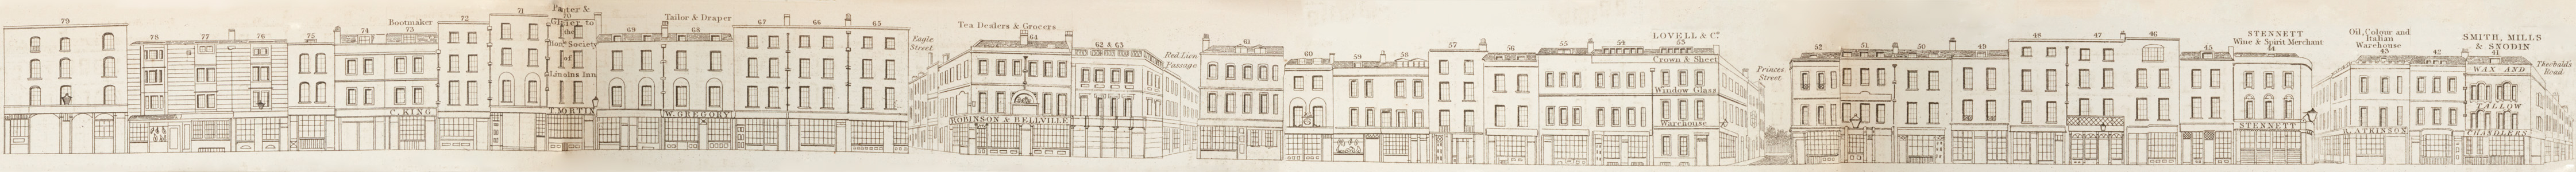 map - Tallis's London street views : No. 29. Red Lion Street, High Holborn (west)